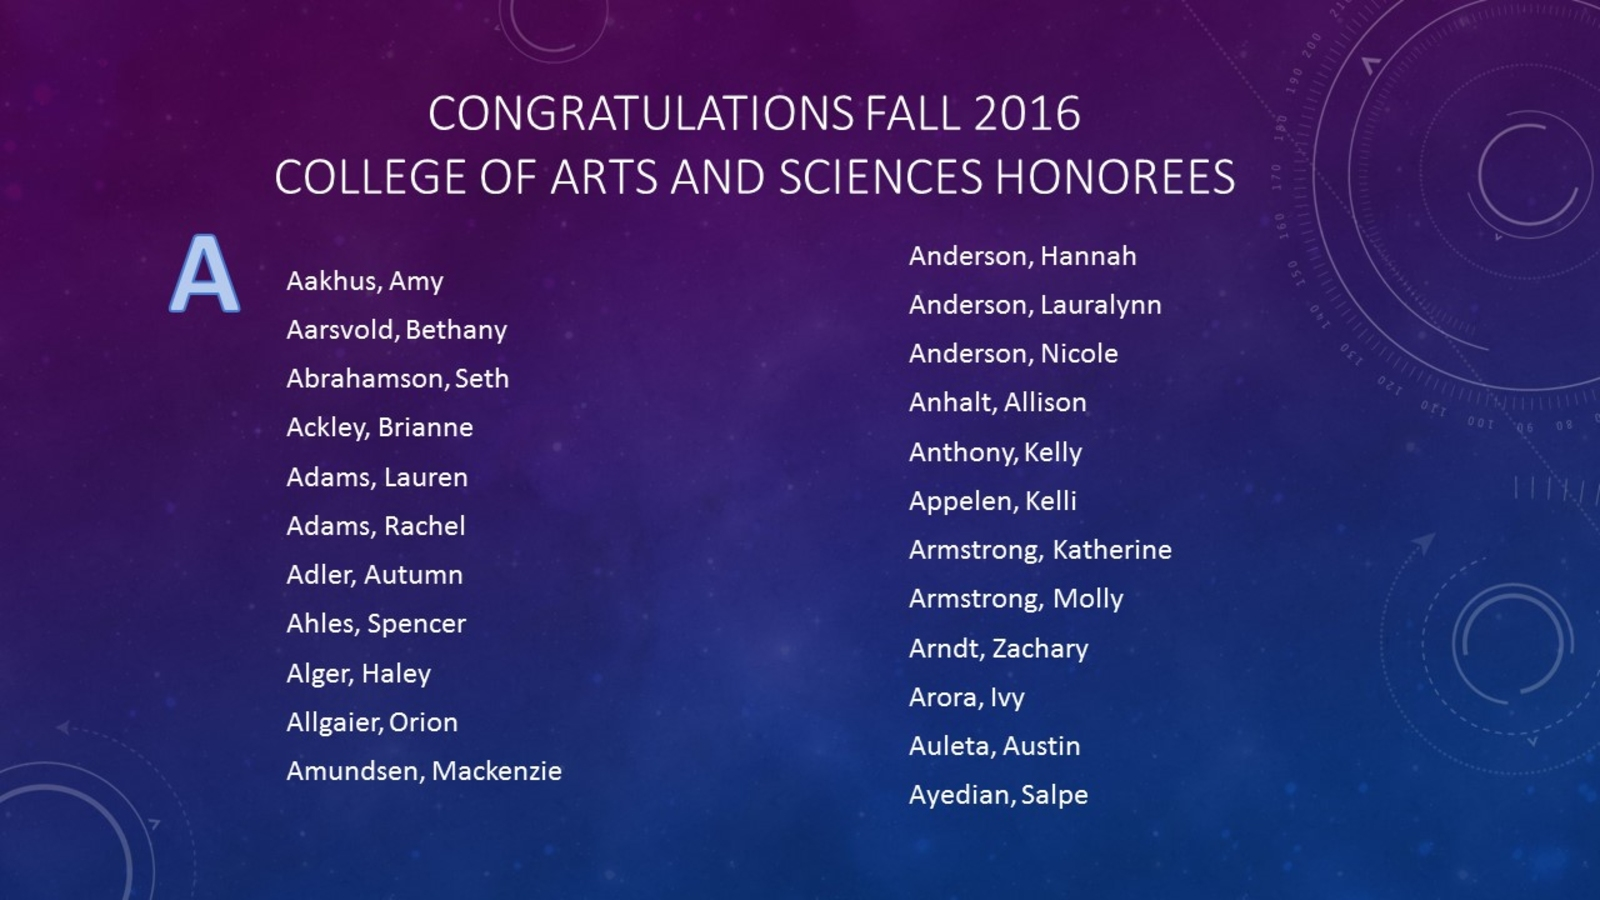 Dean's List Fall 2016 of Recipients with the Last Name starting with A